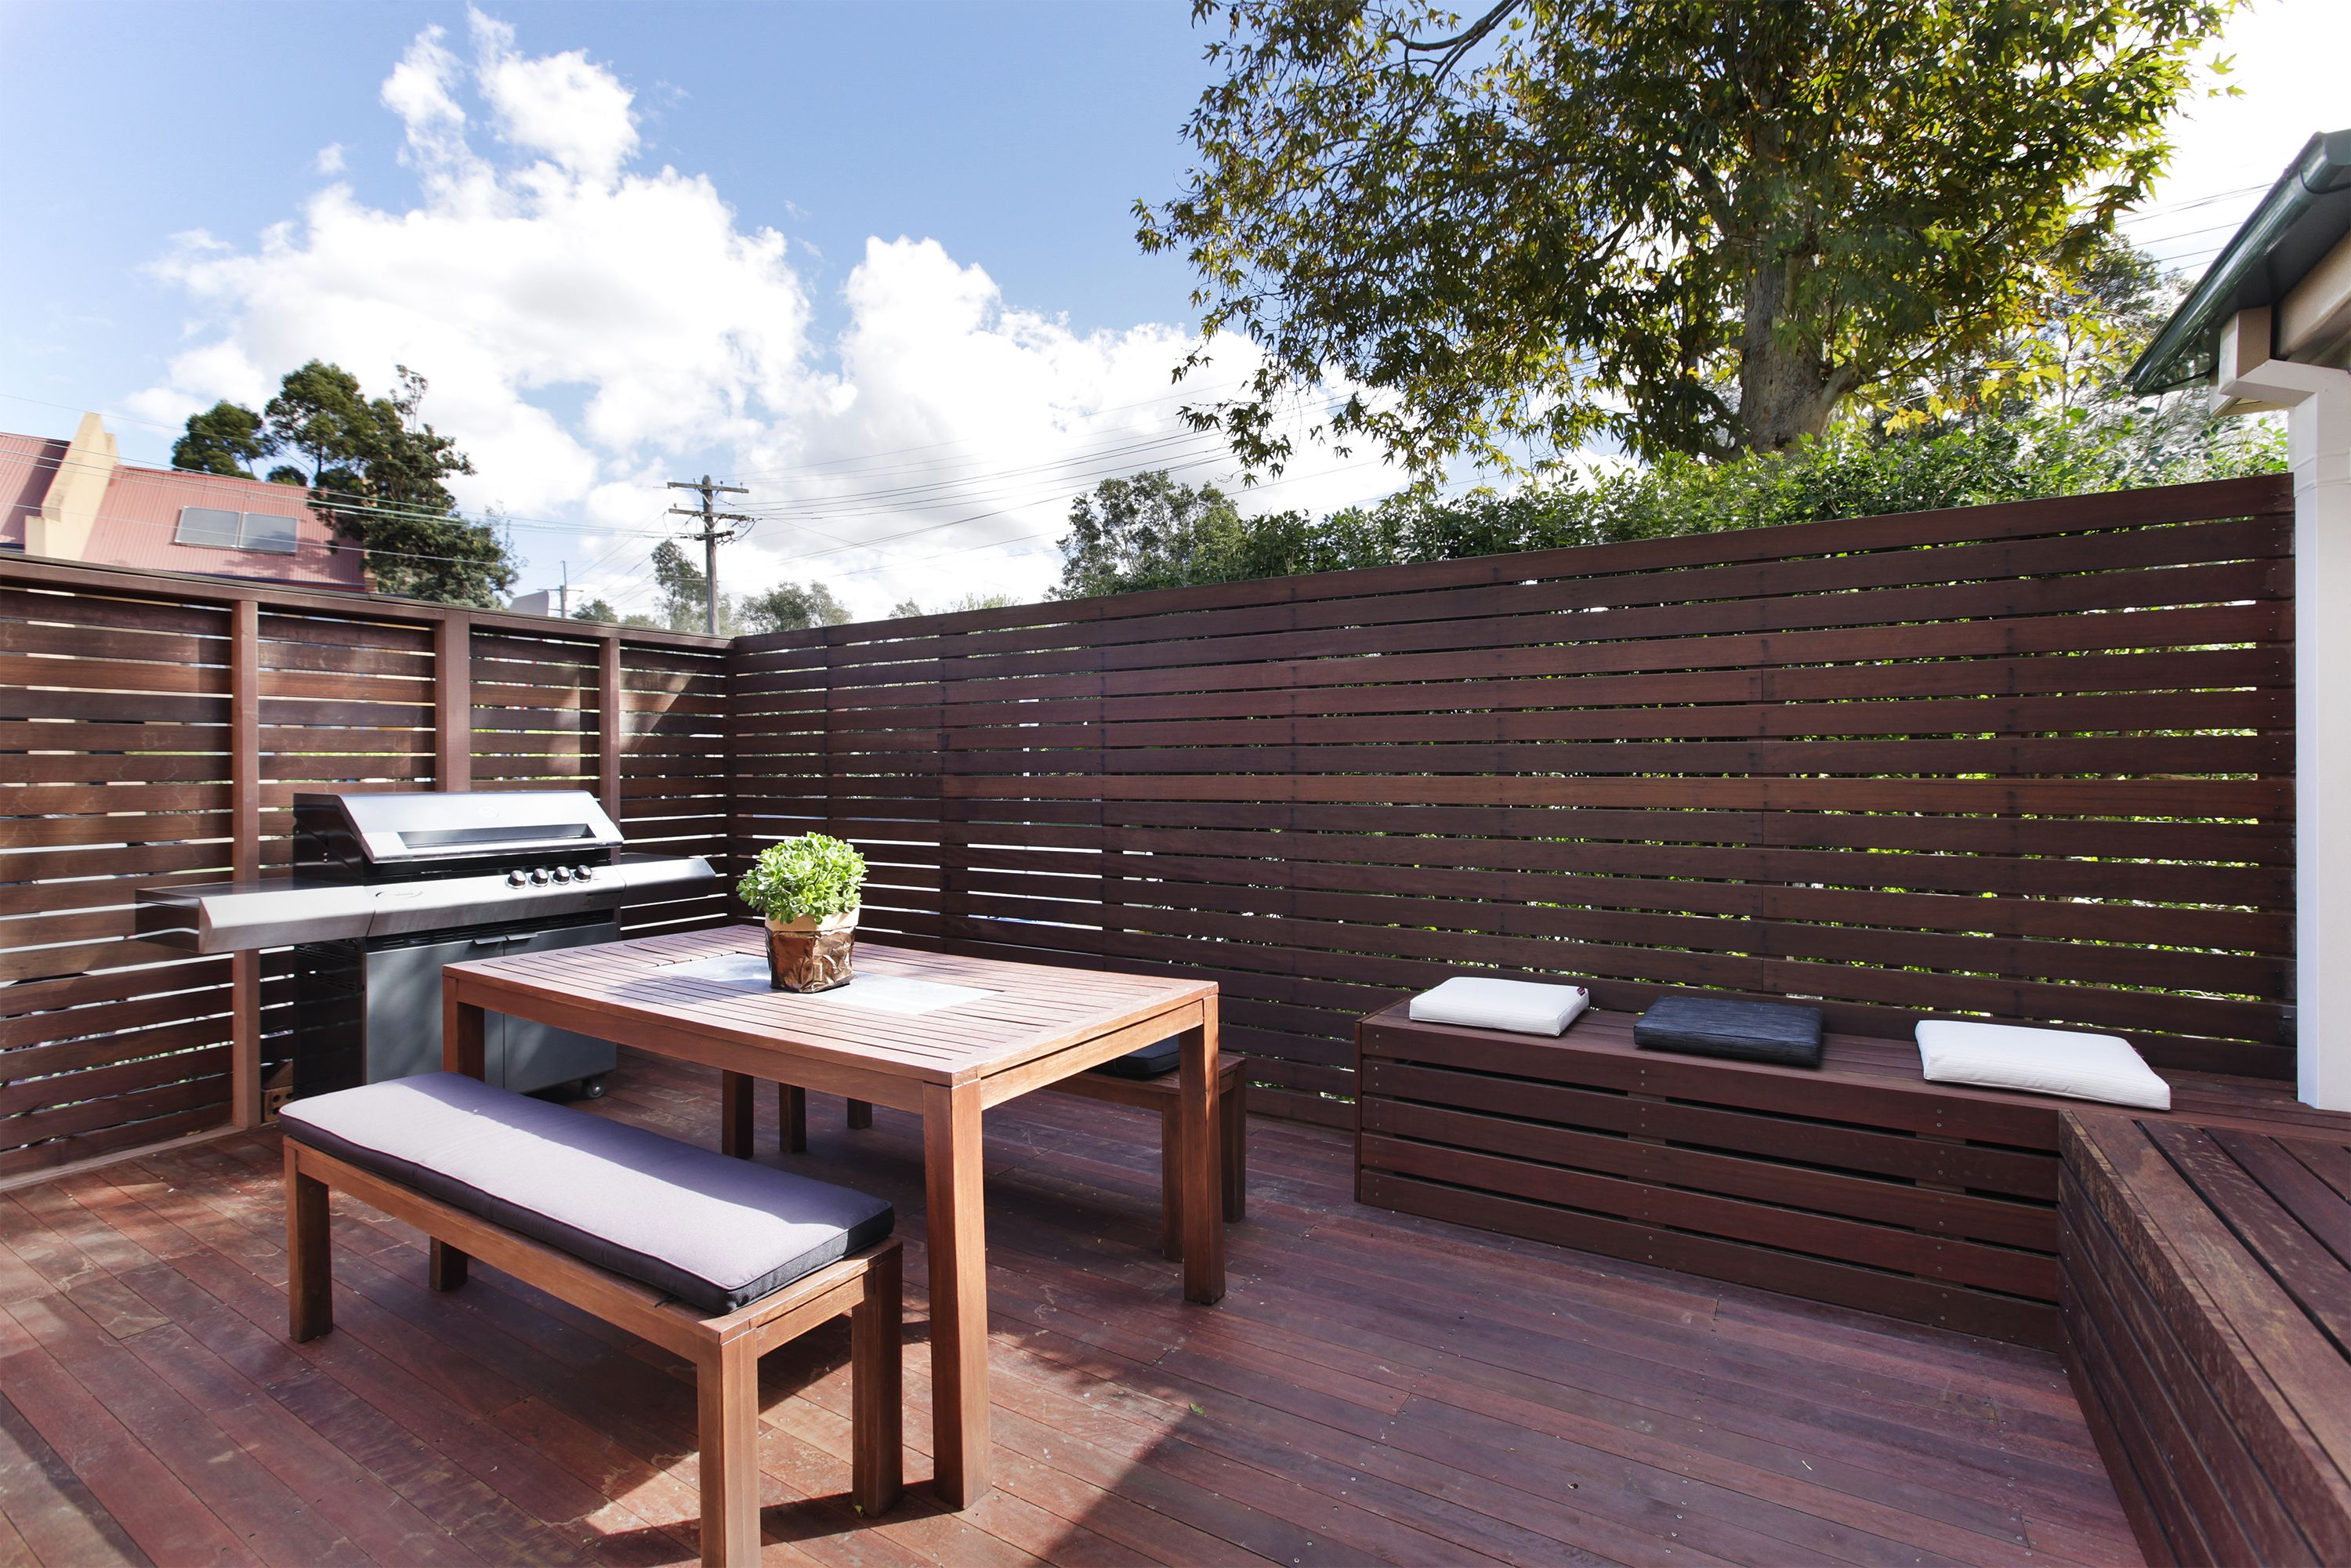 this private outdoor dining area uses timber walls and built in